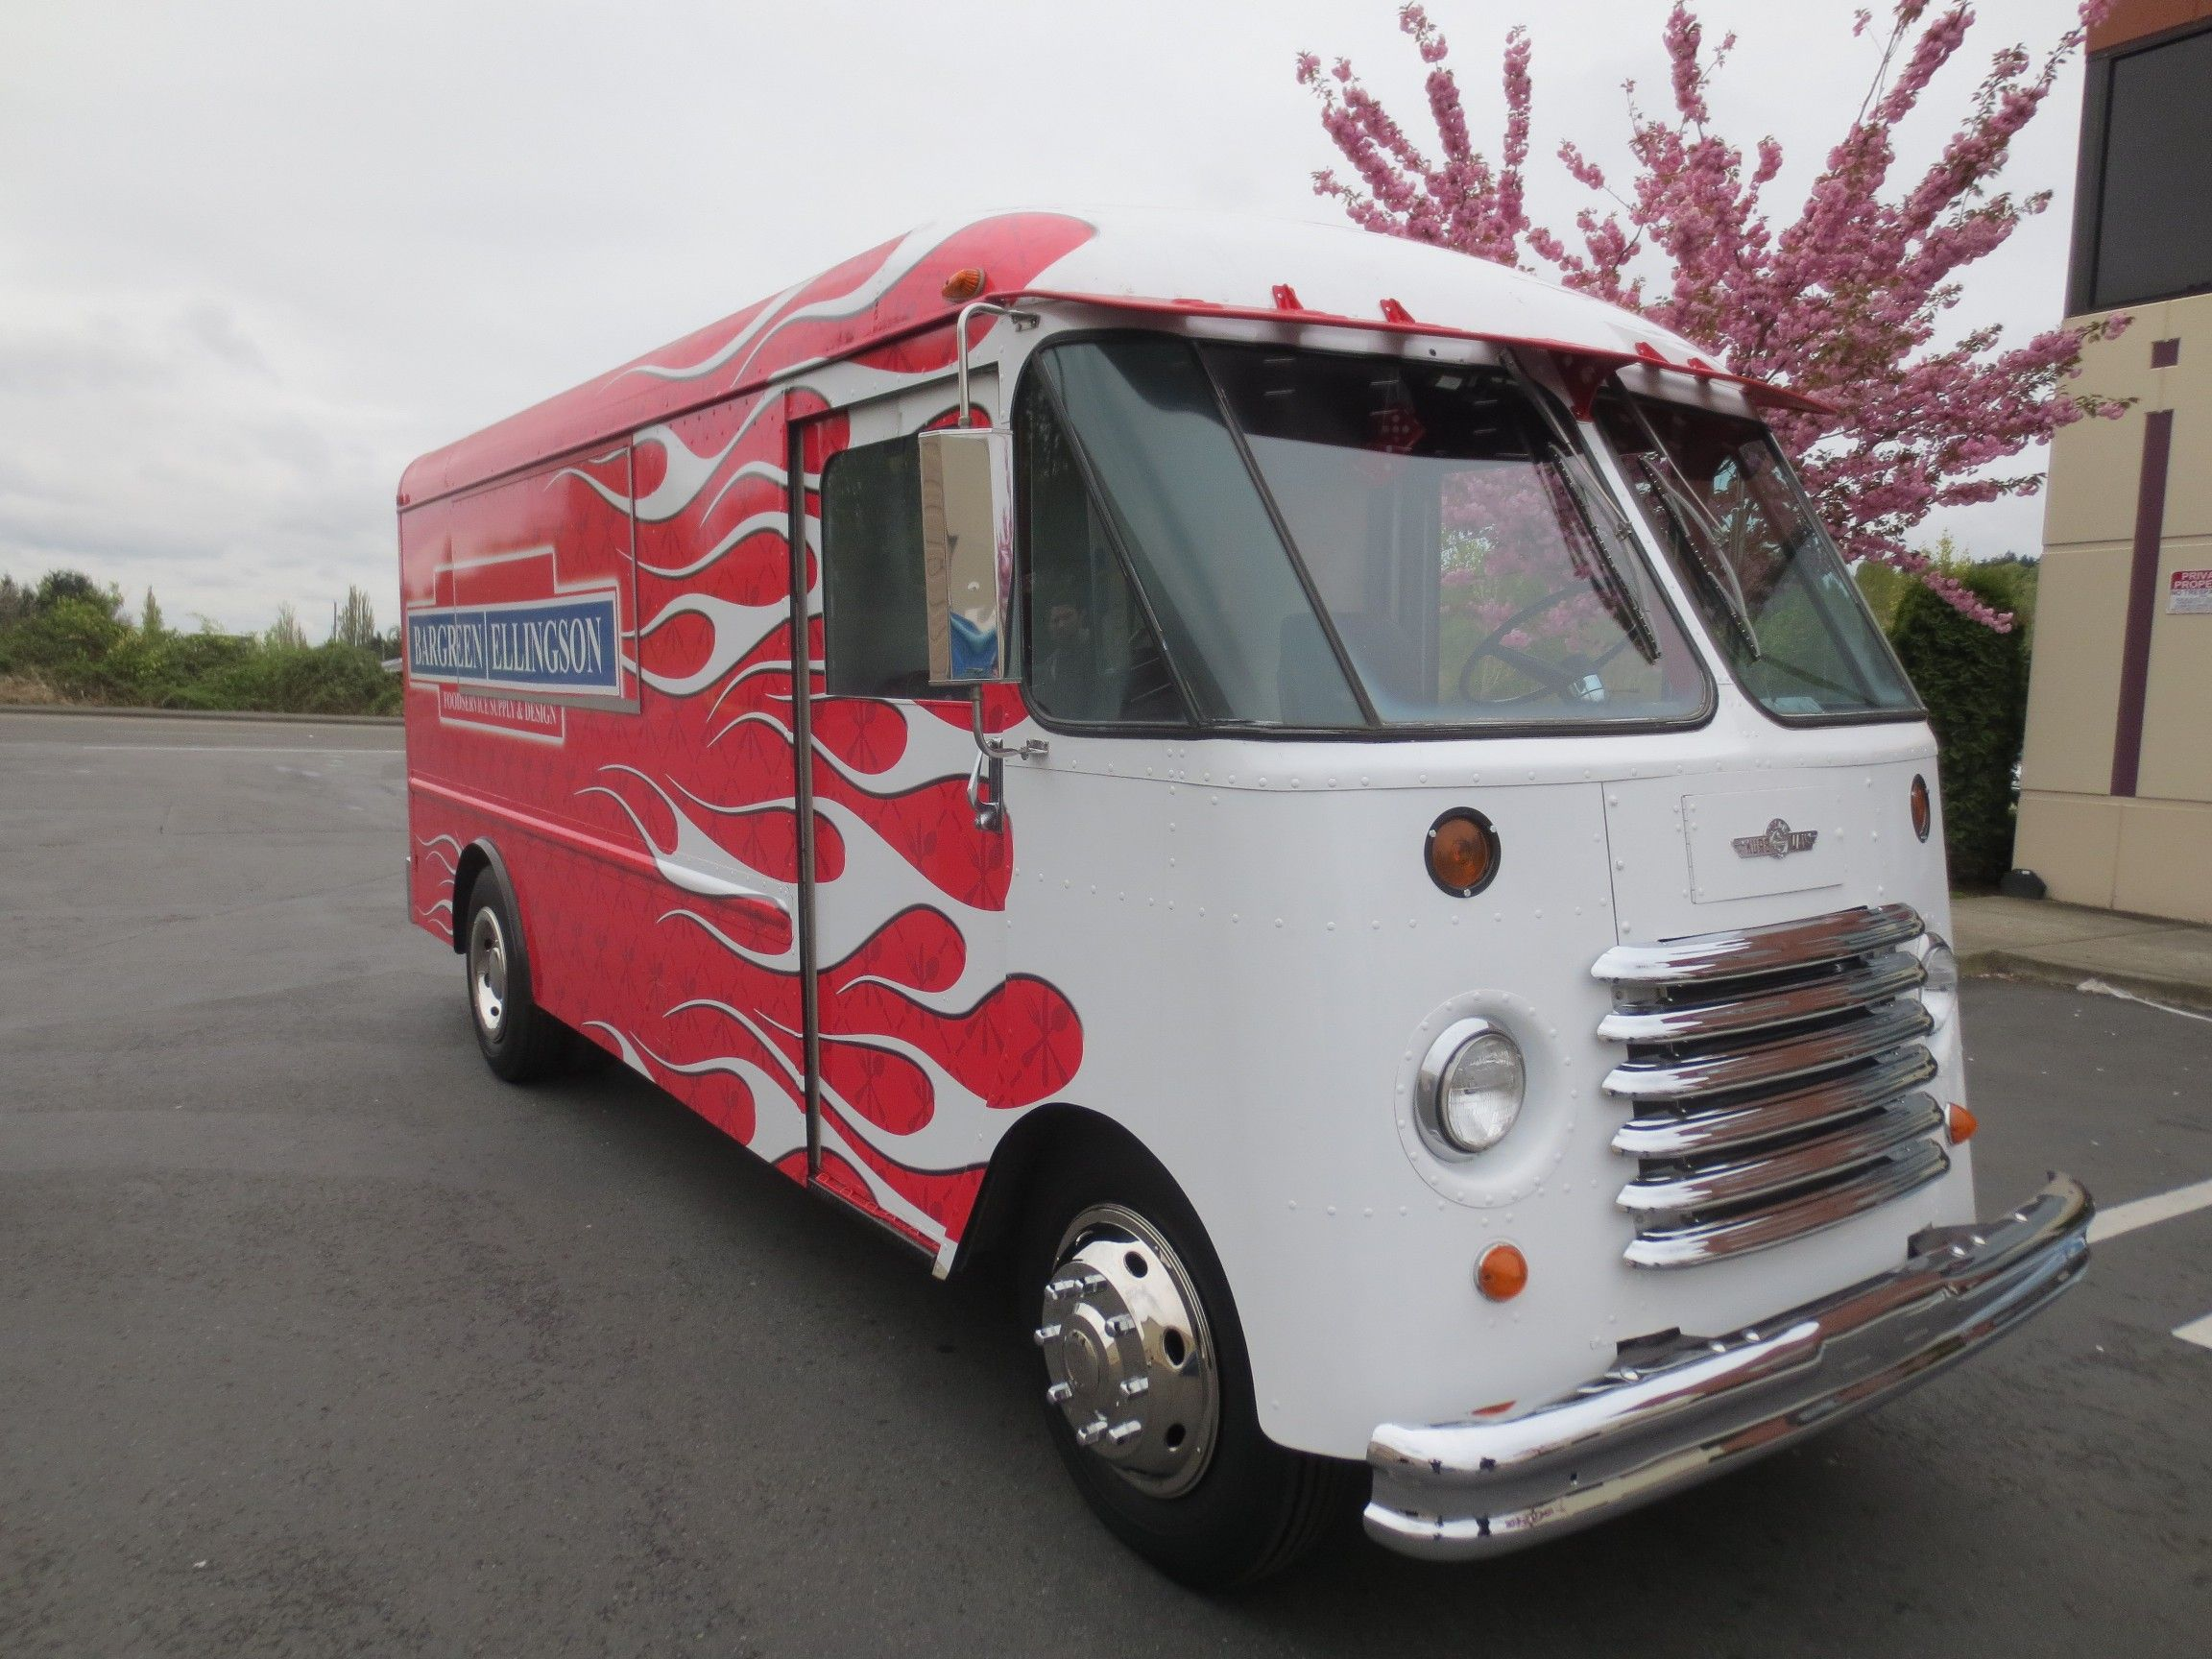 1964 Grumman GMC Aluminum Step Van Food Truck with Flames by Food